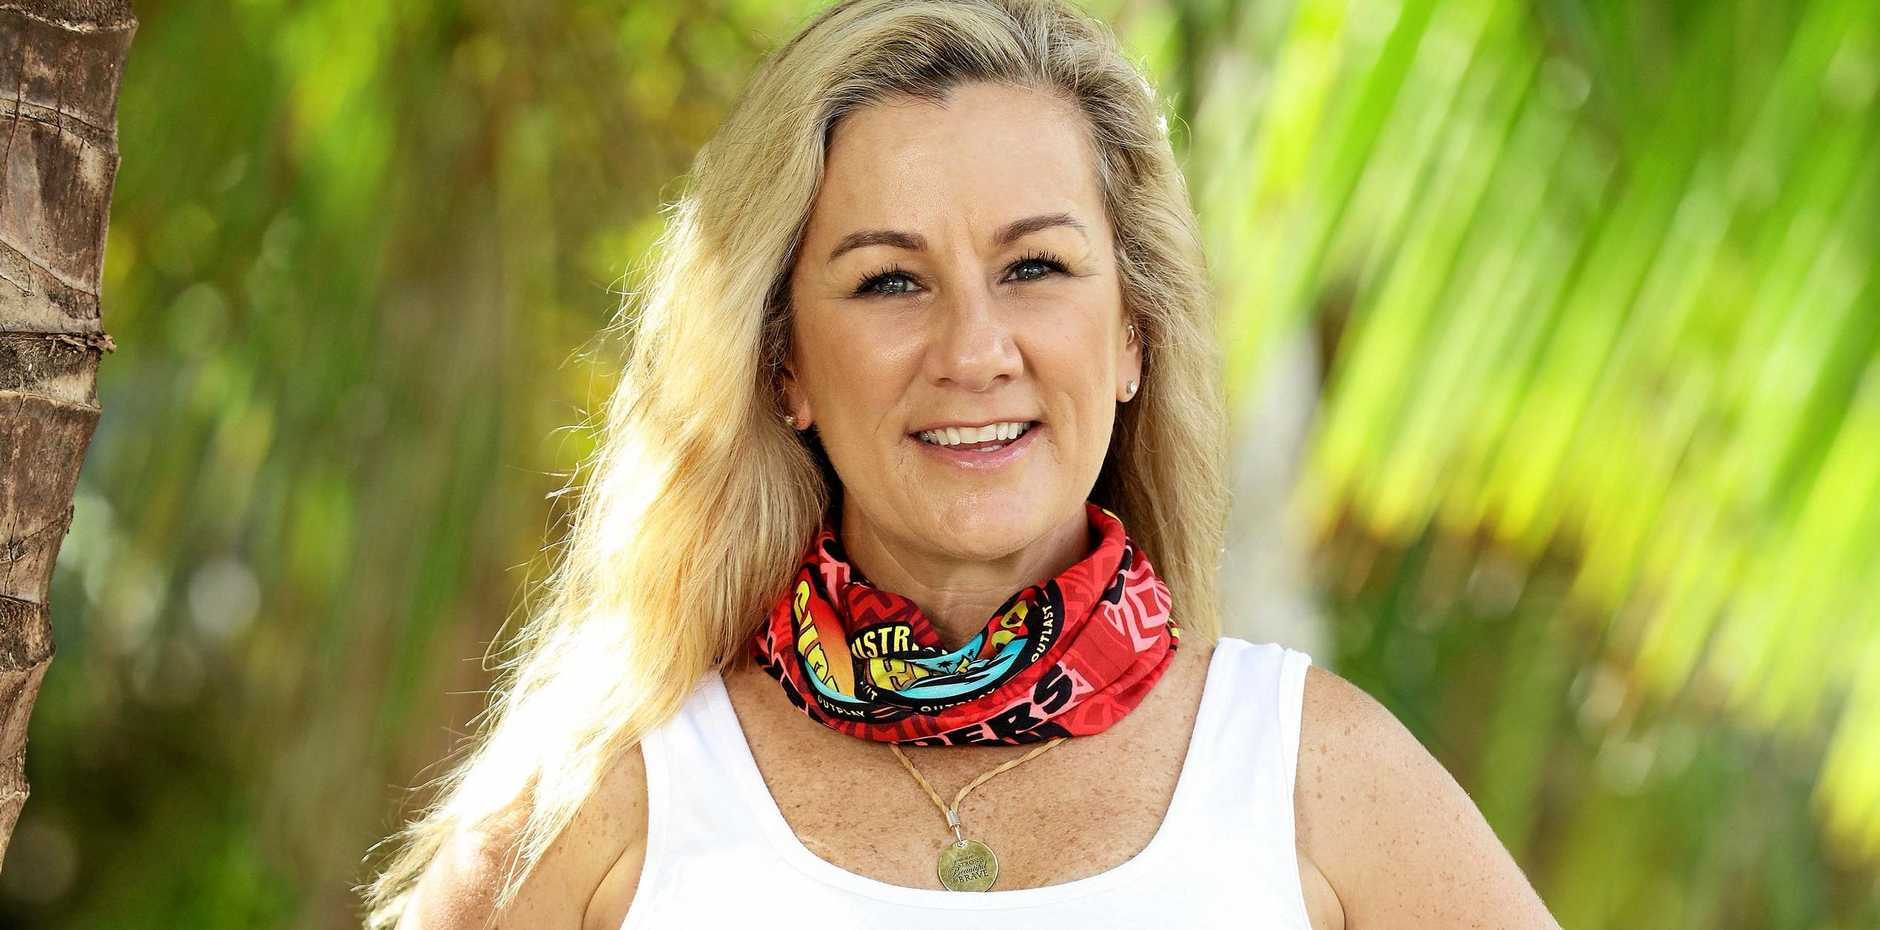 FIR FOR CHALLENGE: Sunshine Coast sales rep Anita is a contestant in the third season of Australian Survivor: Champions Vs Contenders.